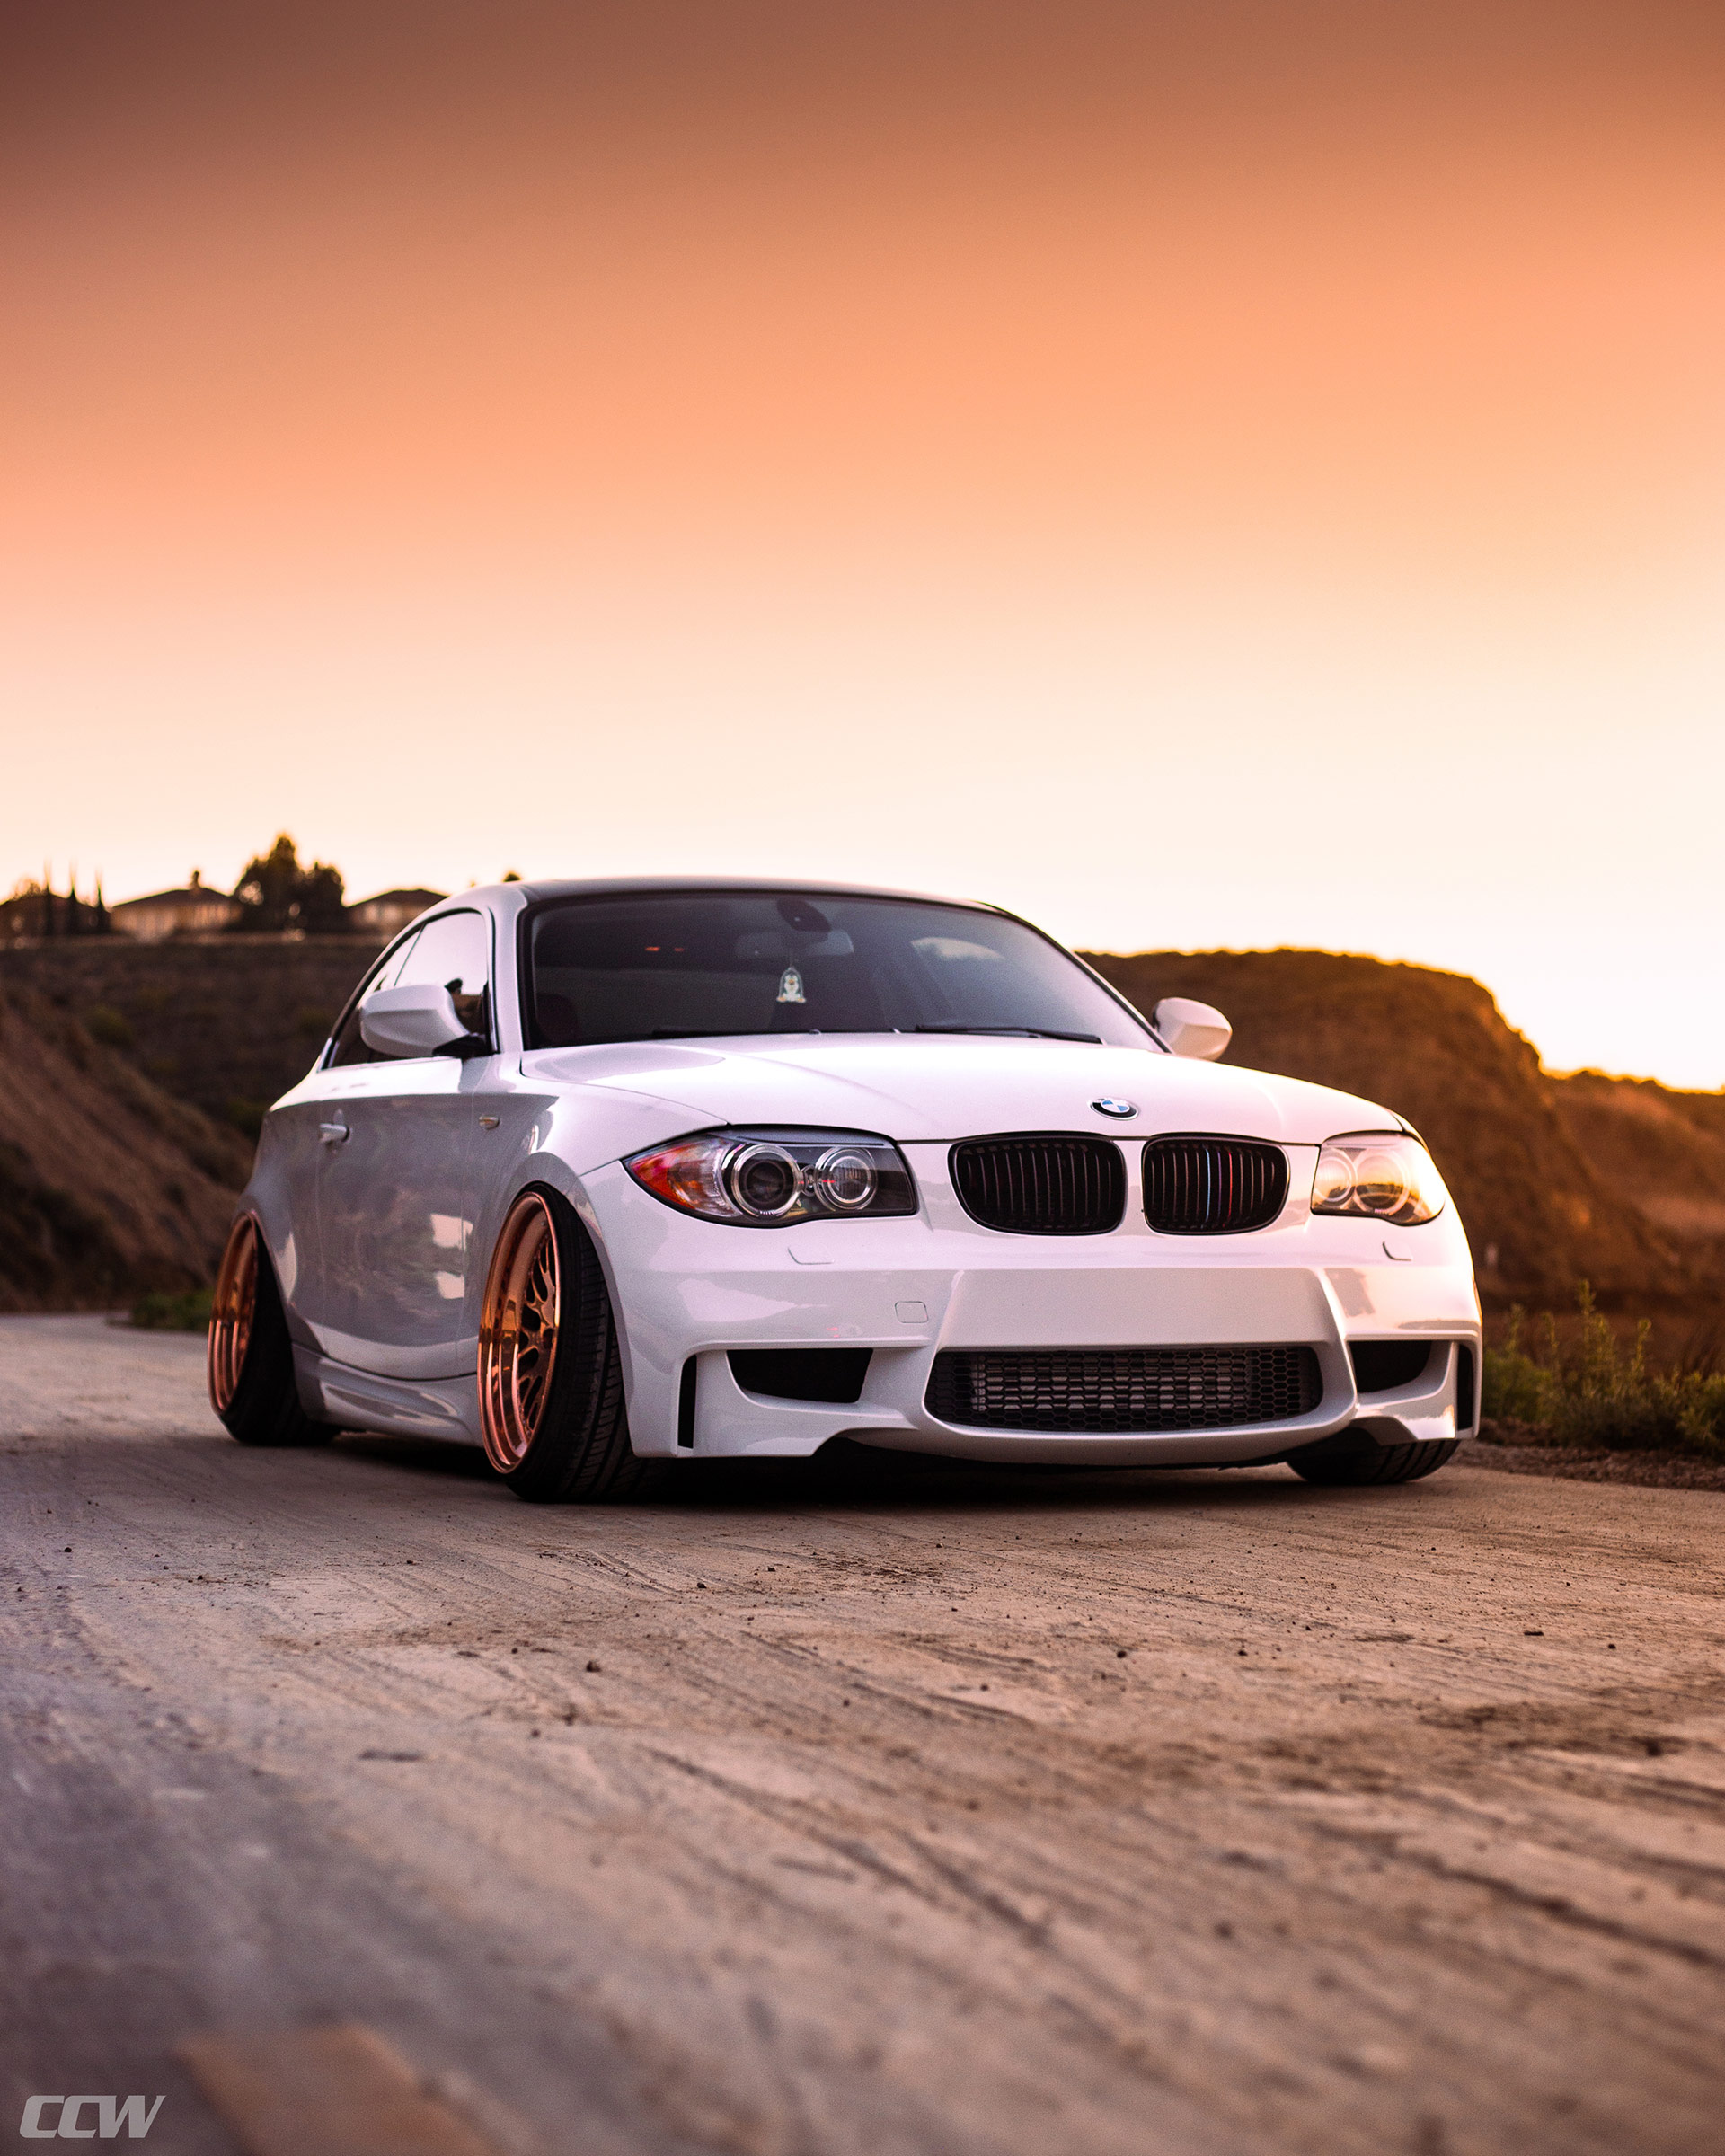 Bmw 5 Series Modified : series, modified, VIDEO:, Great, Performance, Bargain